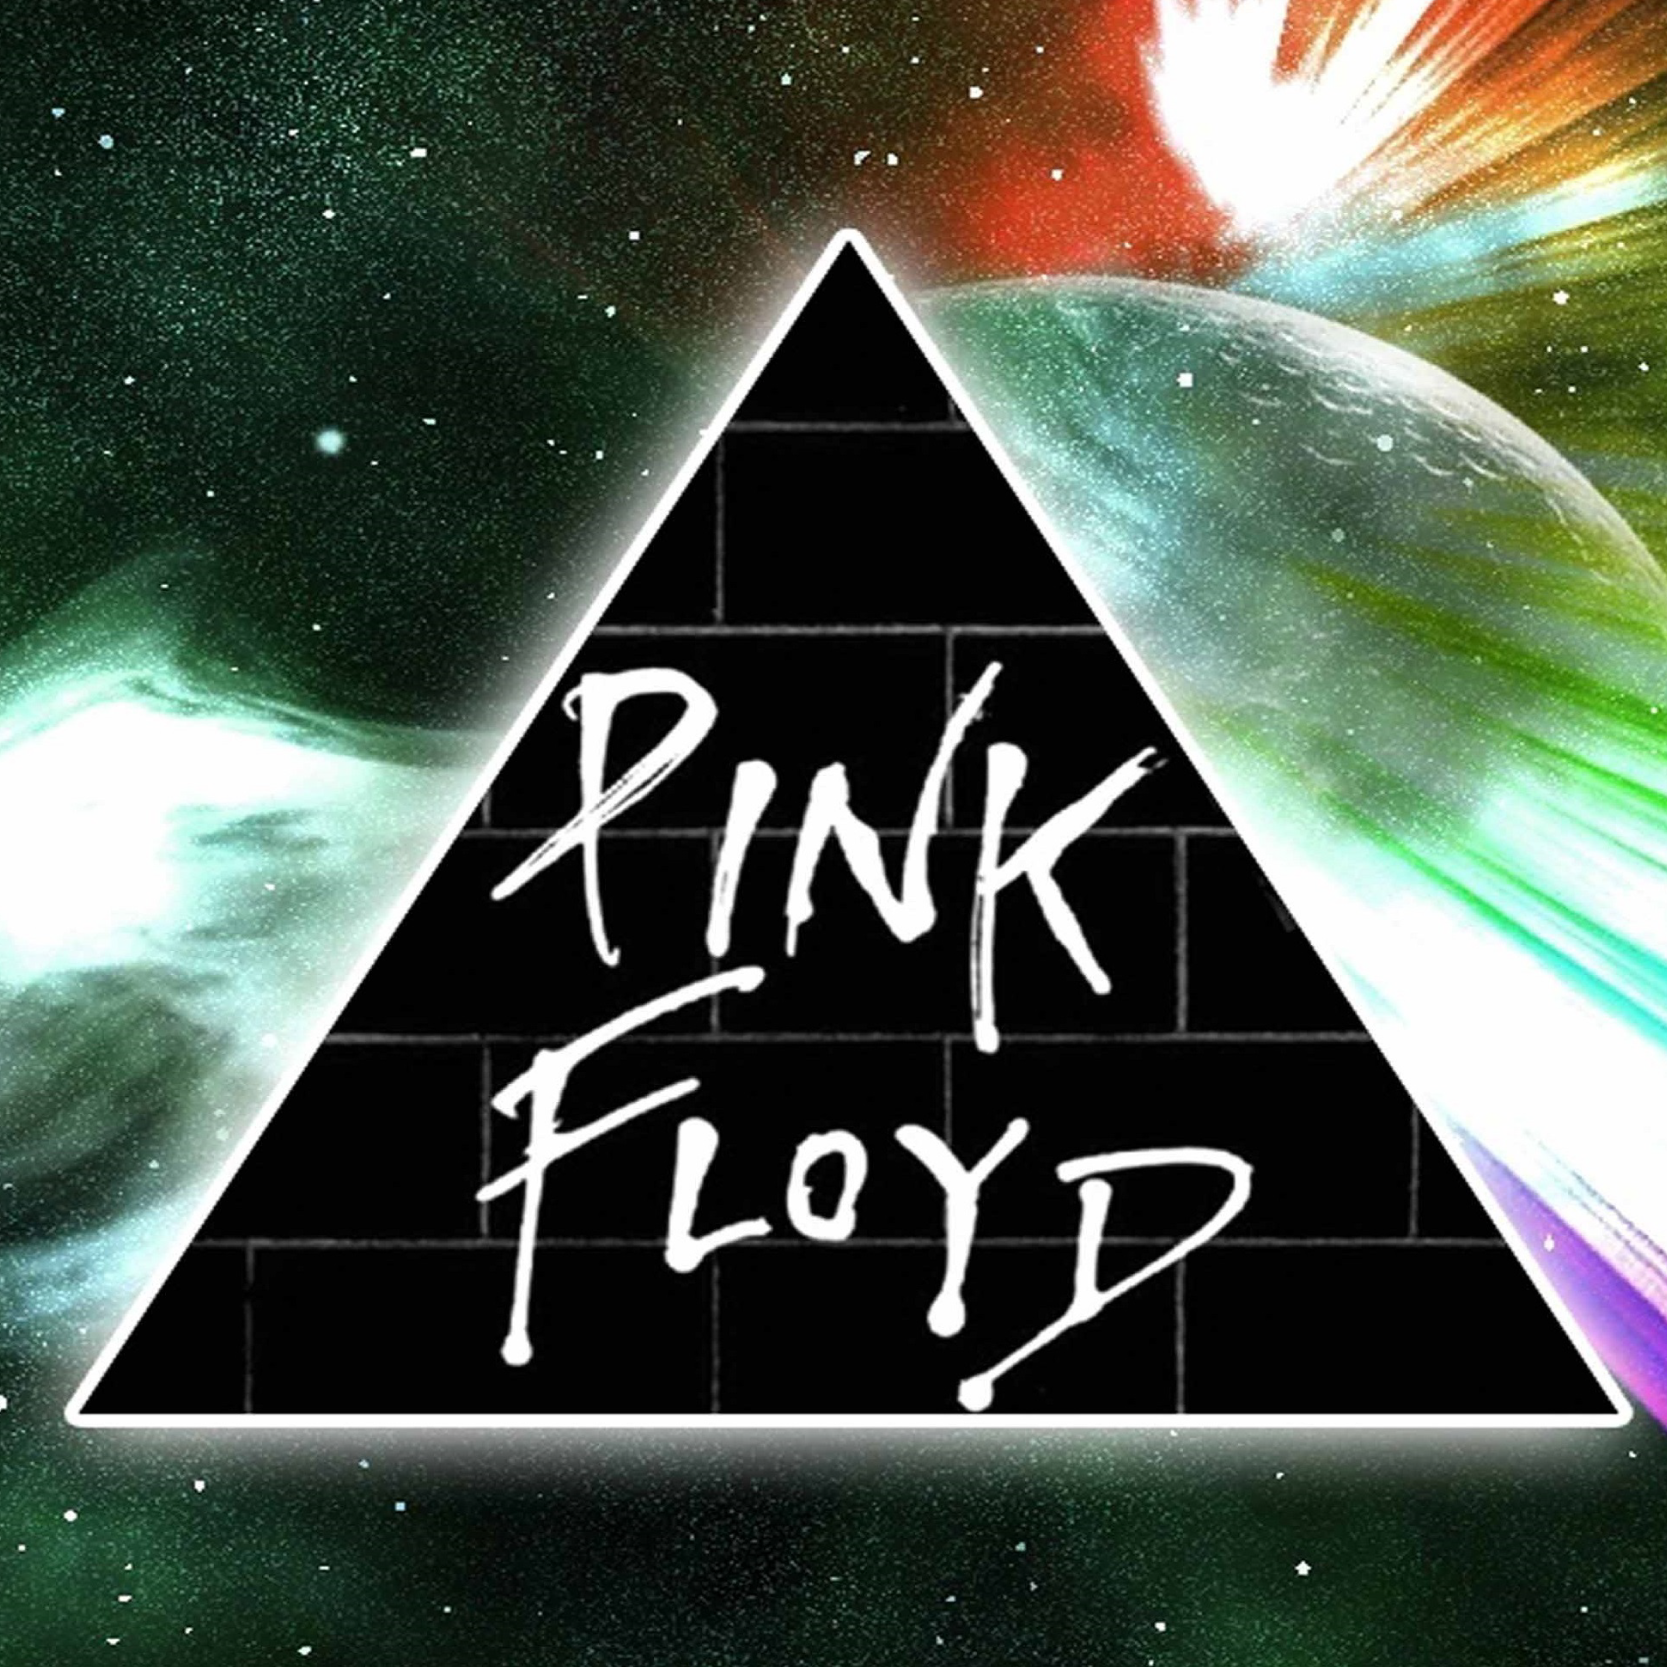 January 18th, 7PM - Pink Floyd: Dark Side of the Moon